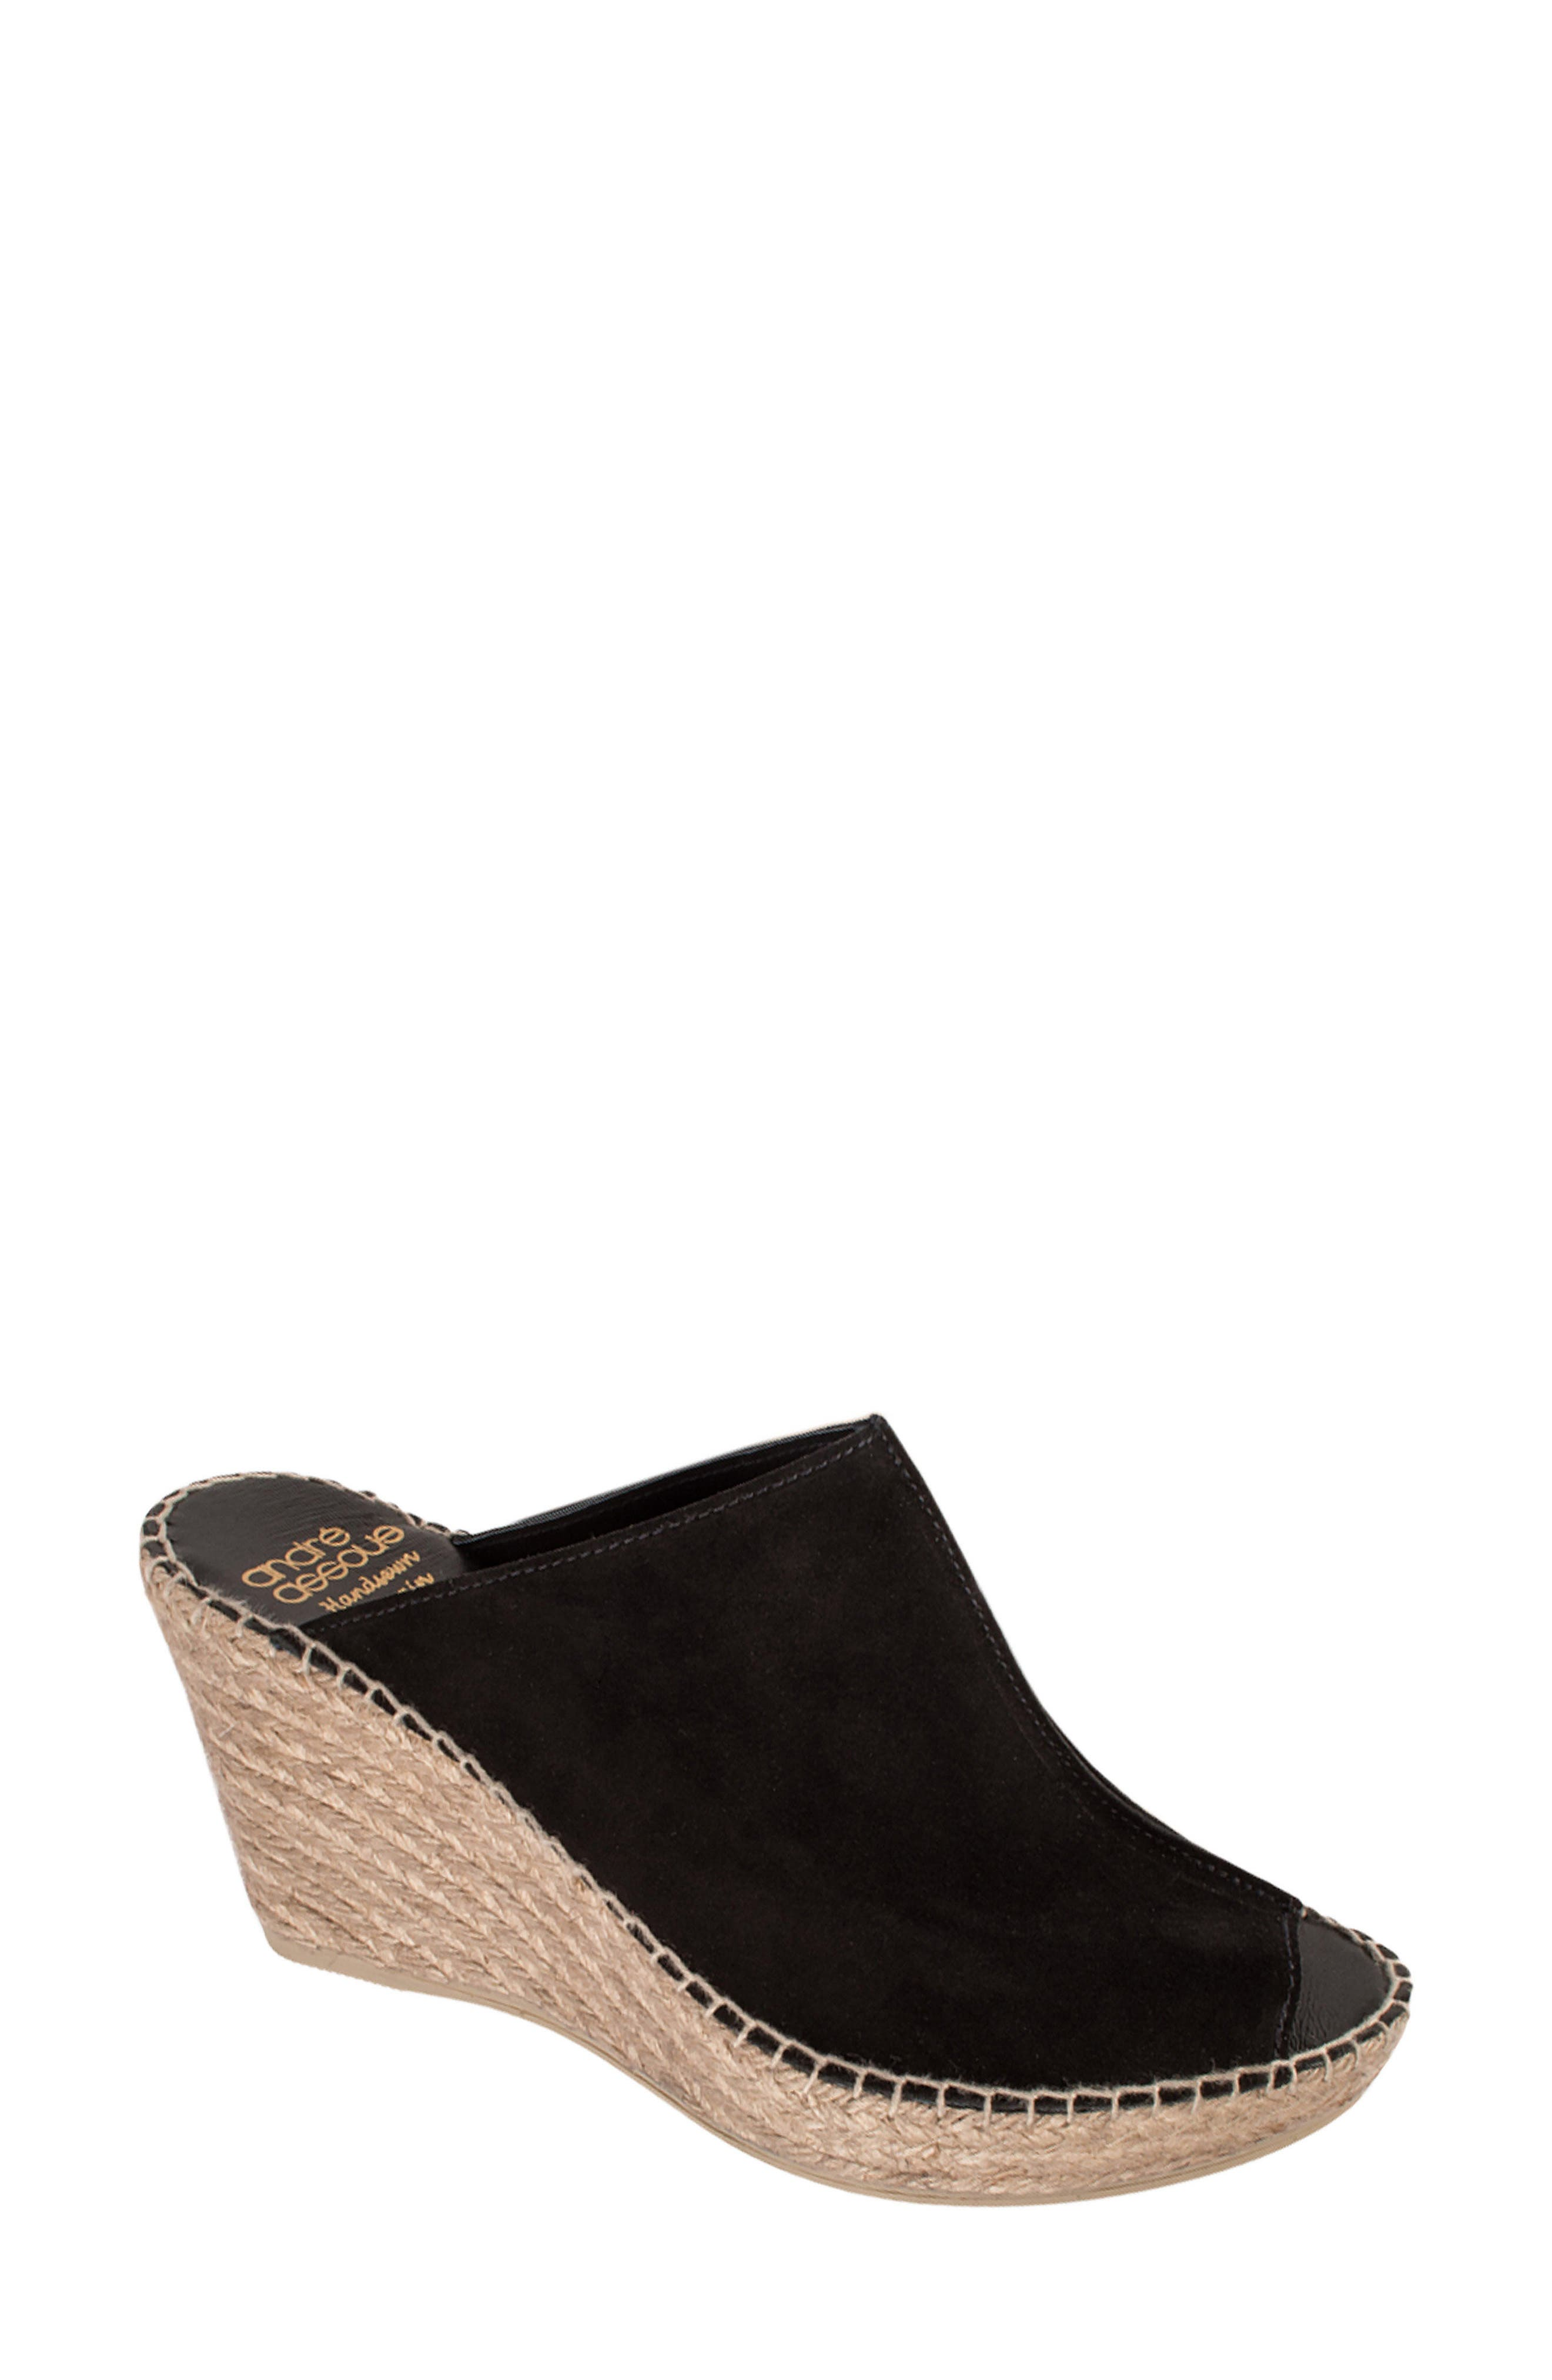 Andre Assous Cici Espadrille Wedge, Black